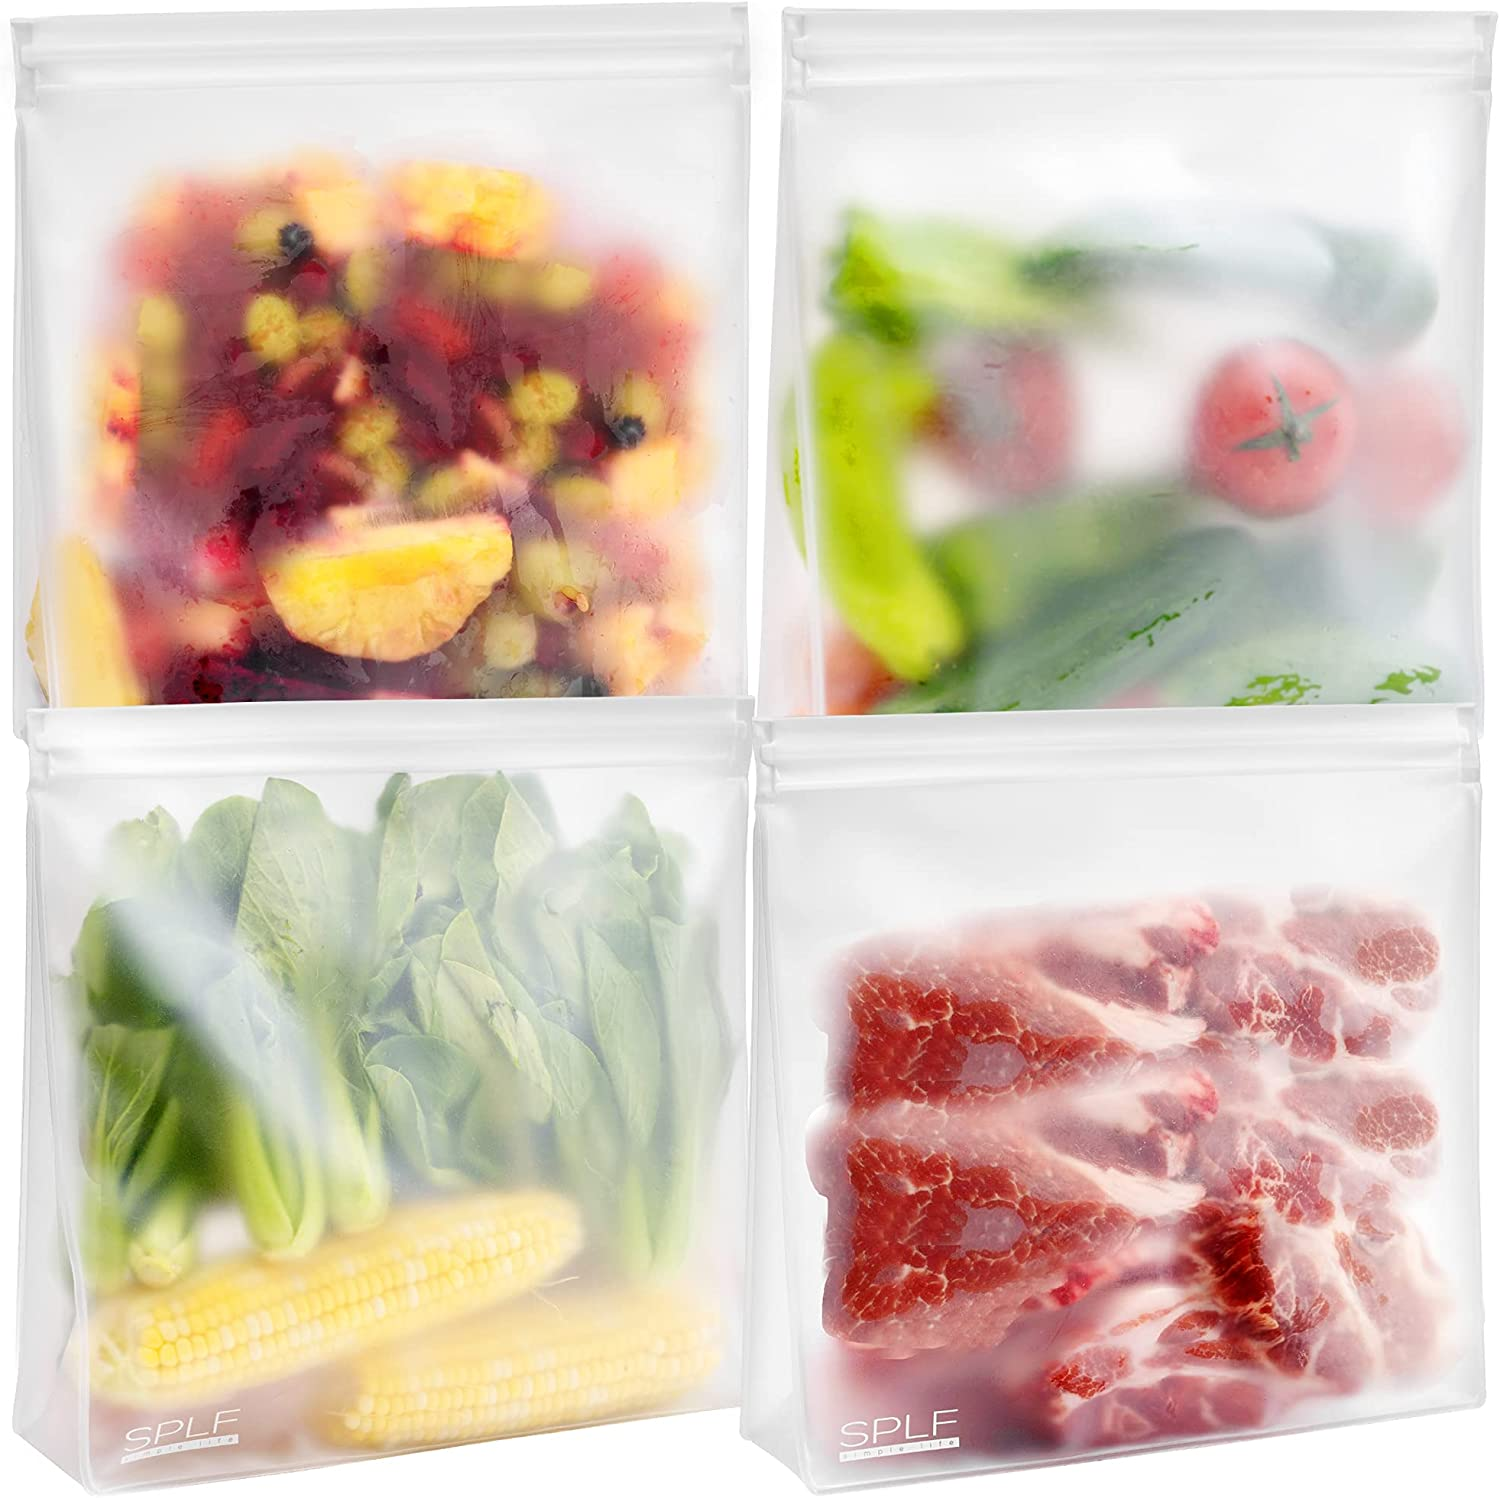 SPLF 4 Pack Dishwasher Safe Stand Up Reusable Gallon Freezer Bags, Extra Thick Reusable Food Storage Bags Leakproof Silicone and Plastic Free Zipper Sandwich Snack Lunch bags Containers